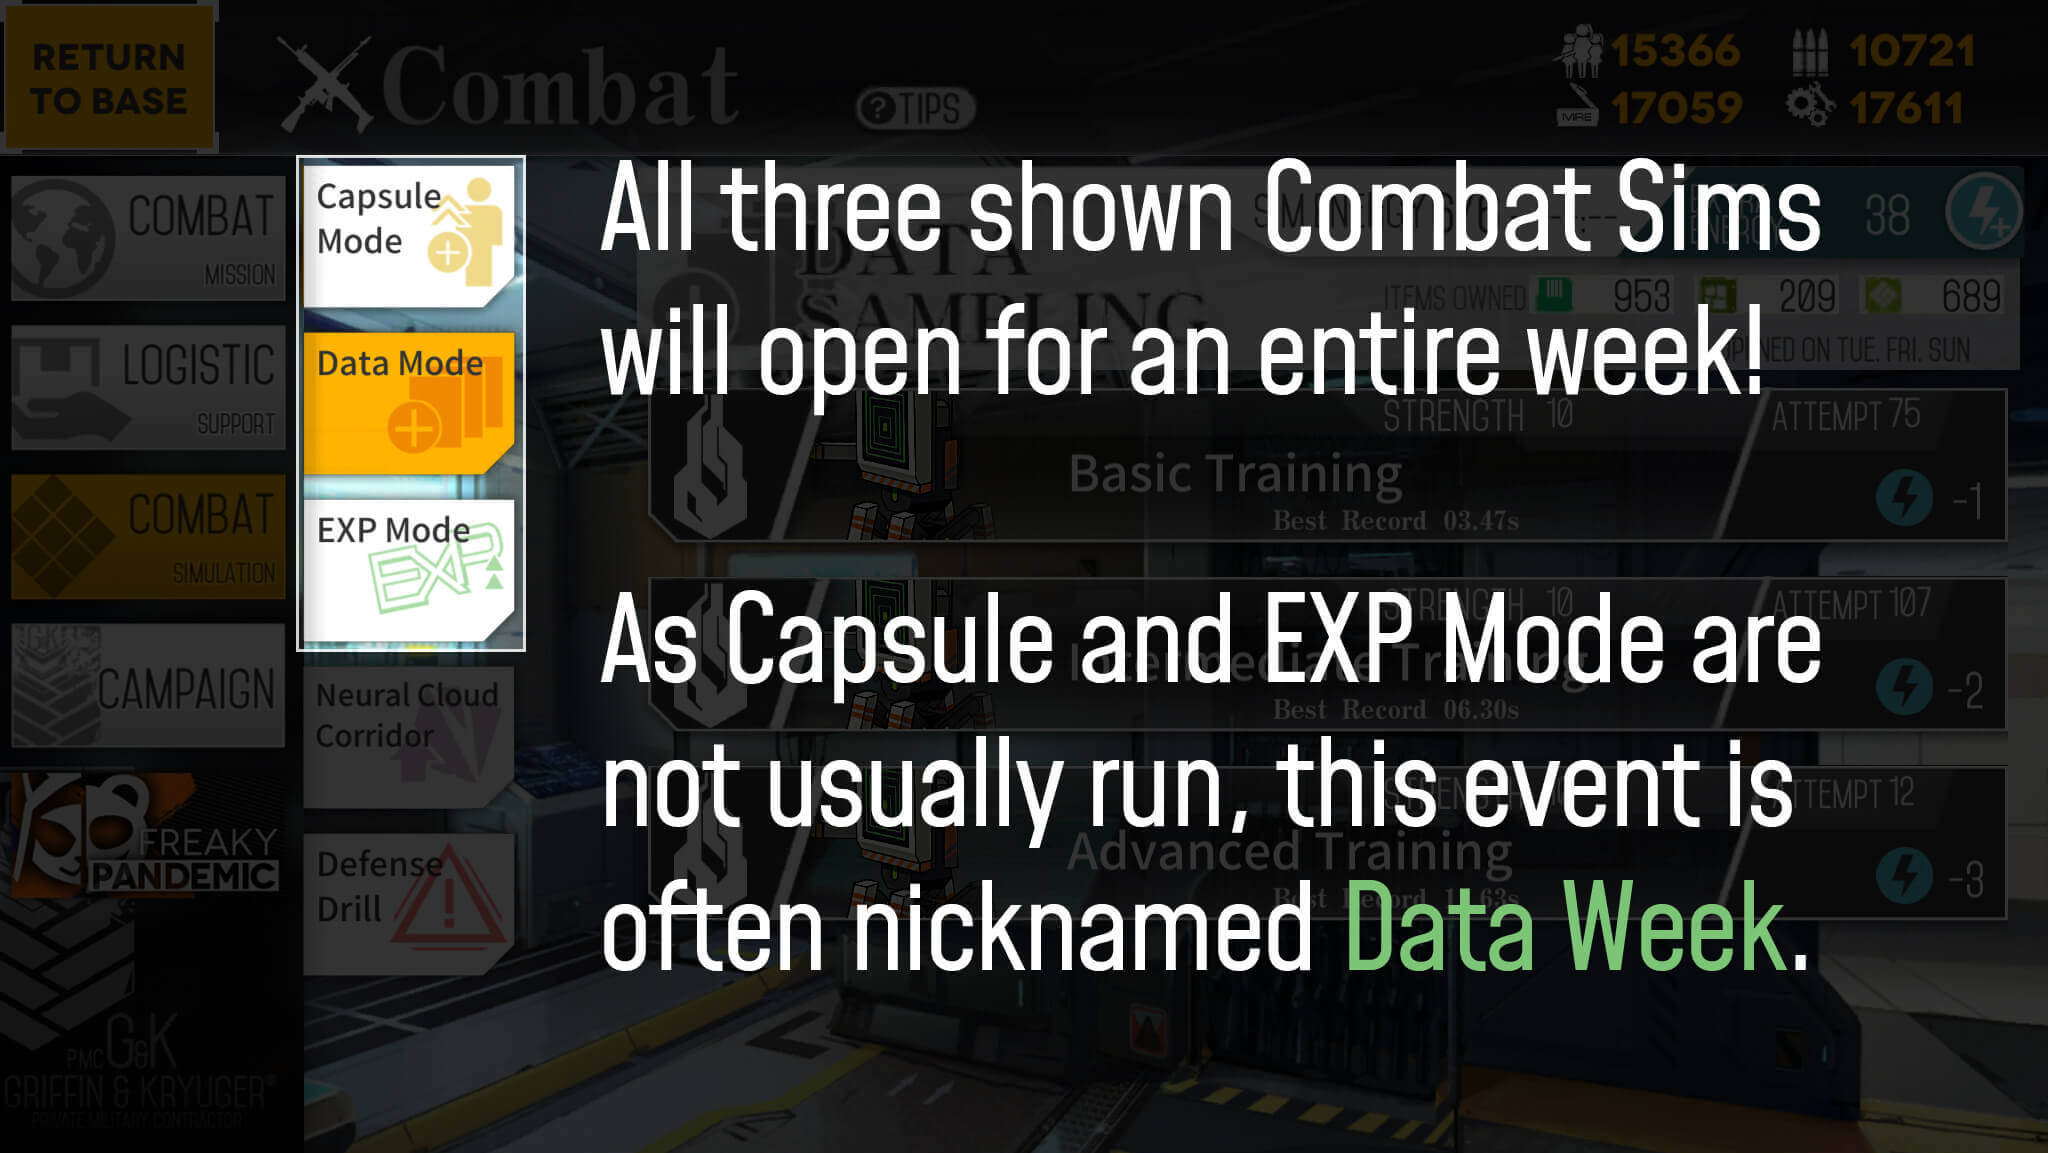 Image explaining combat simulation special event